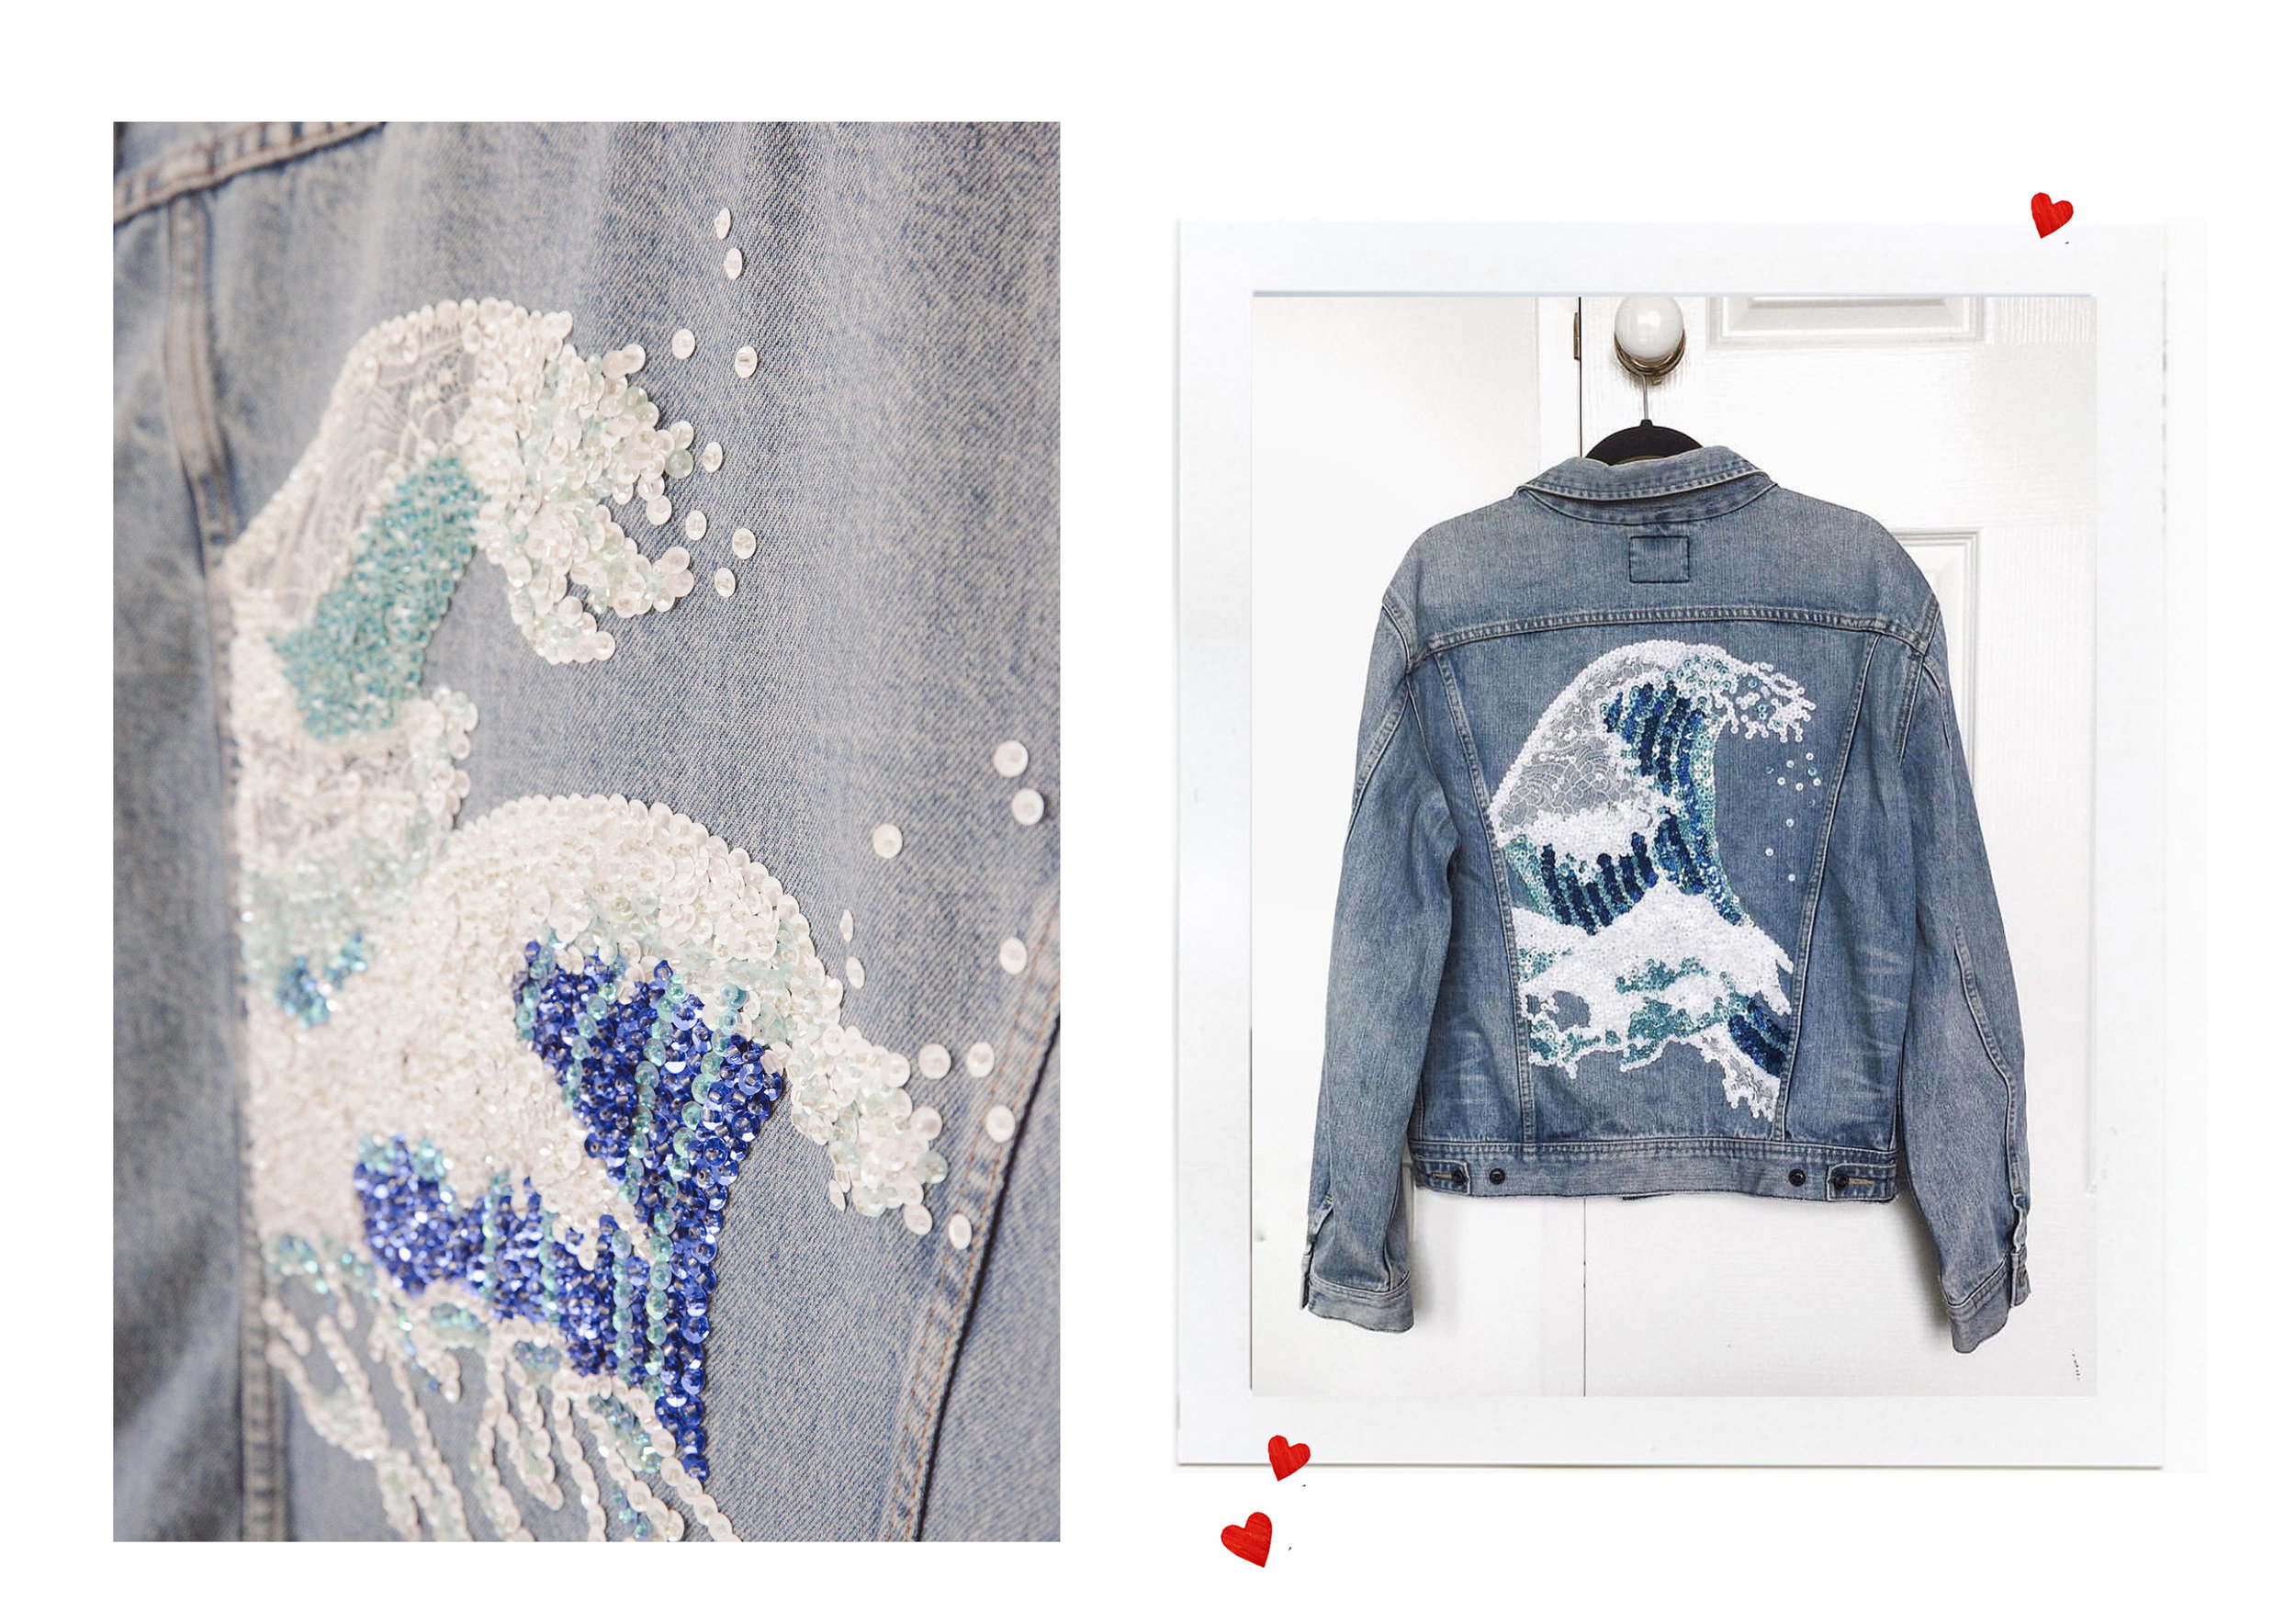 Customise Your Denim - As seen here, The Karissa Great Wave